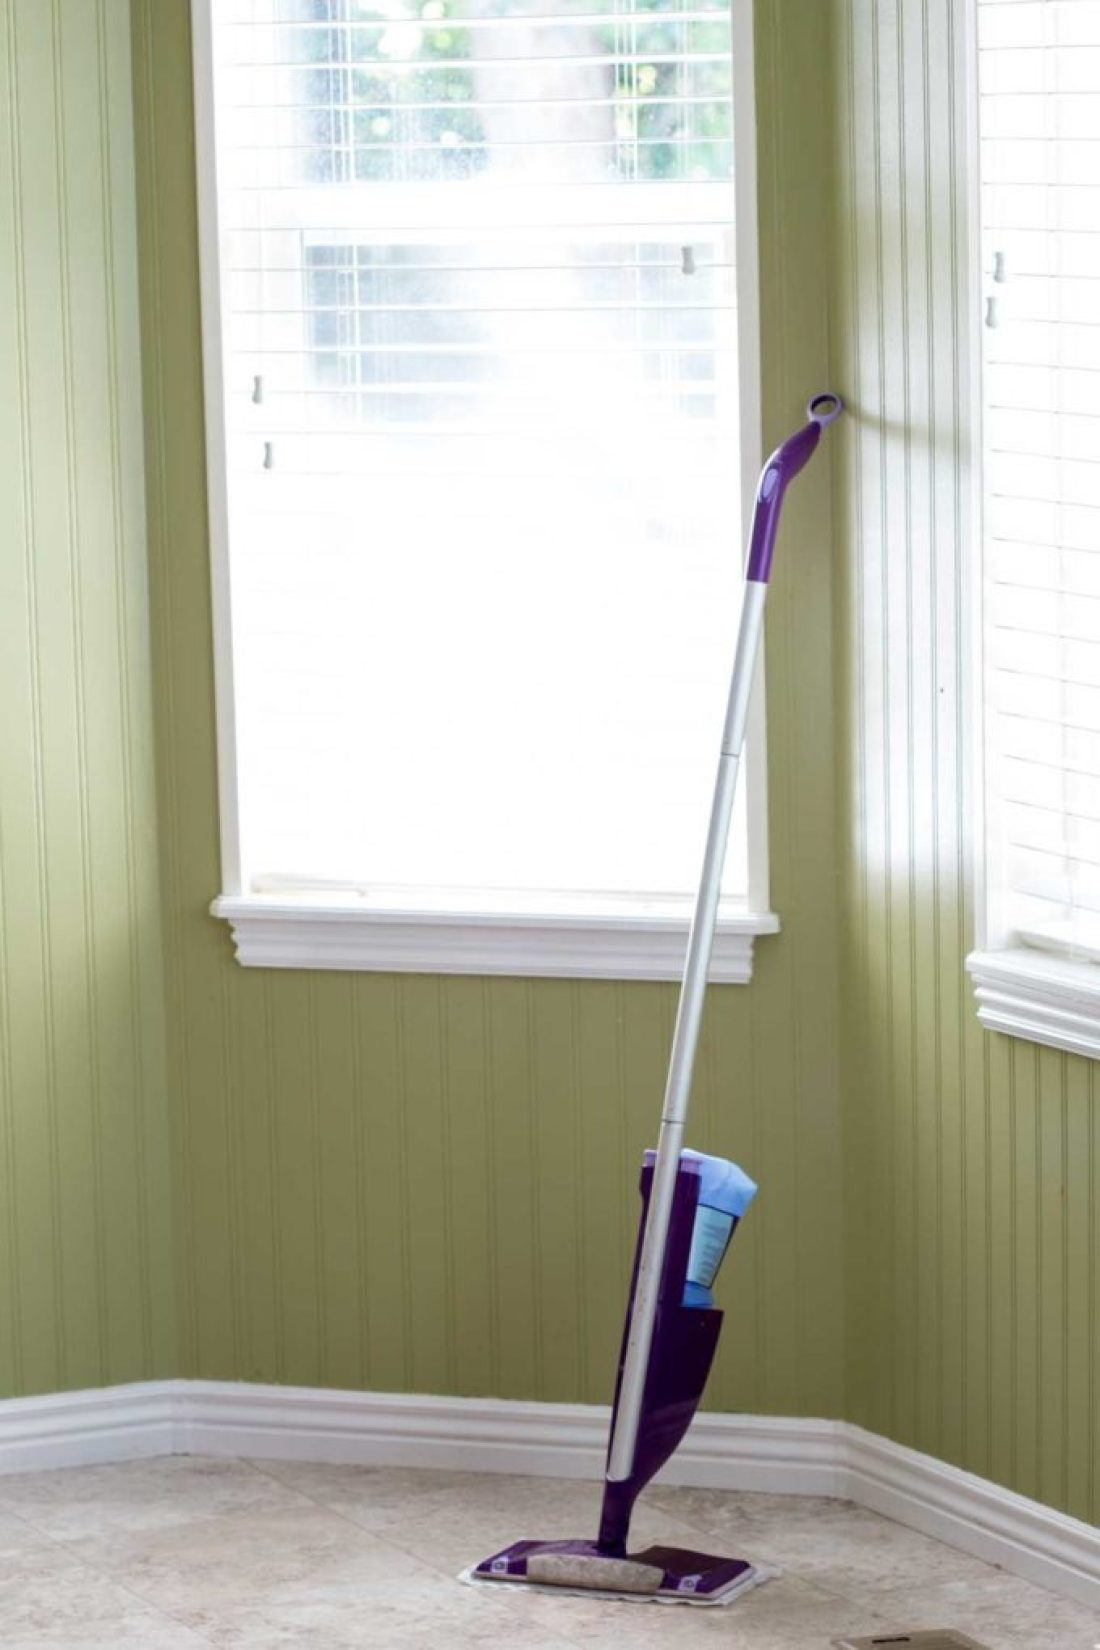 Get a clean home with swiffer